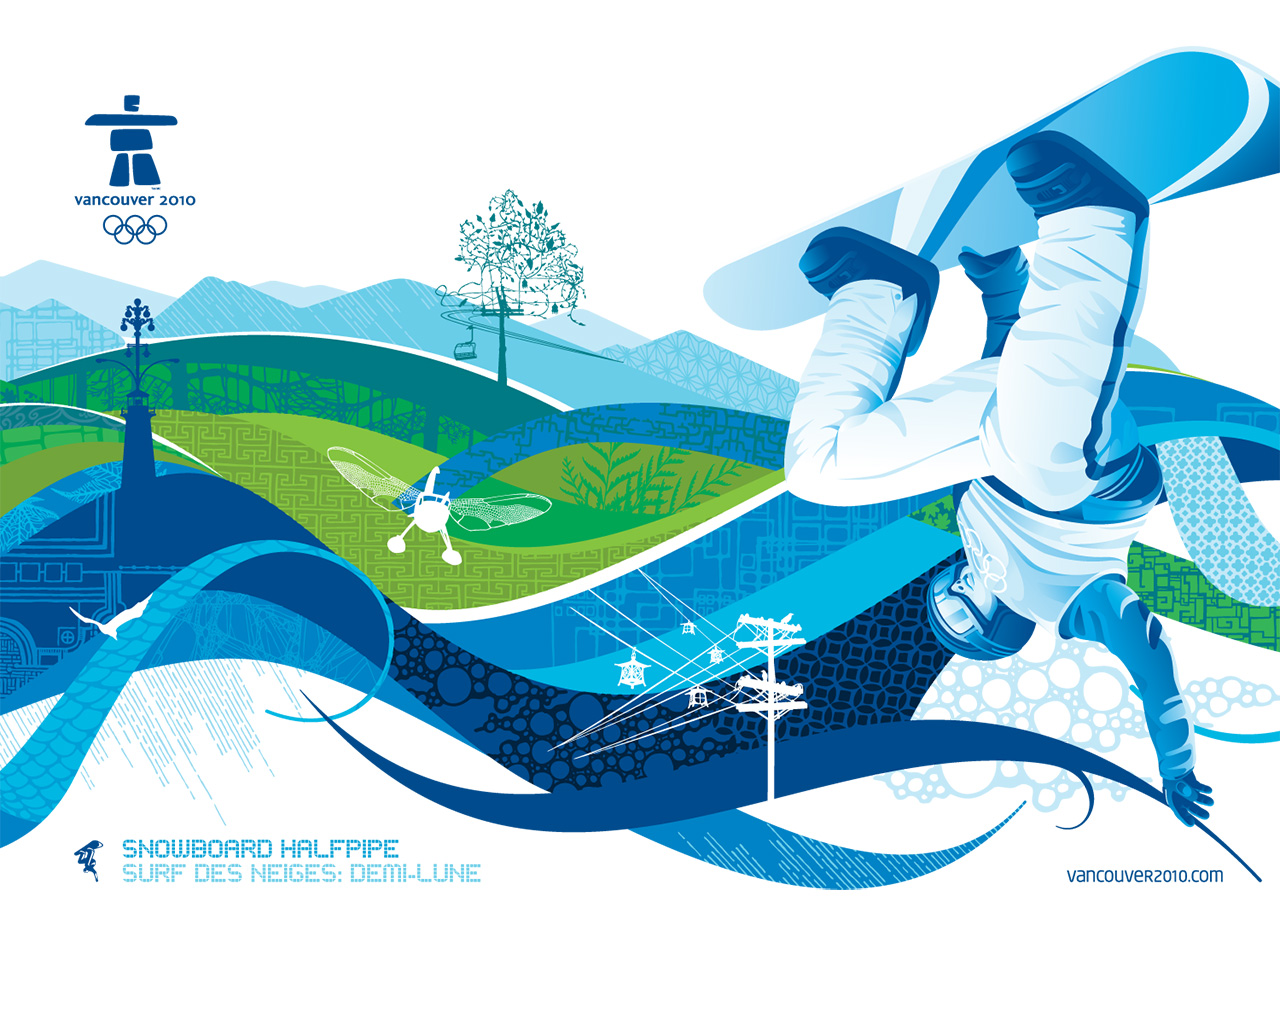 Vancouver 2010 olympic winter games powerpoint backgrounds free free vancouver 2010 olympic winter games powerpoint background 1 toneelgroepblik